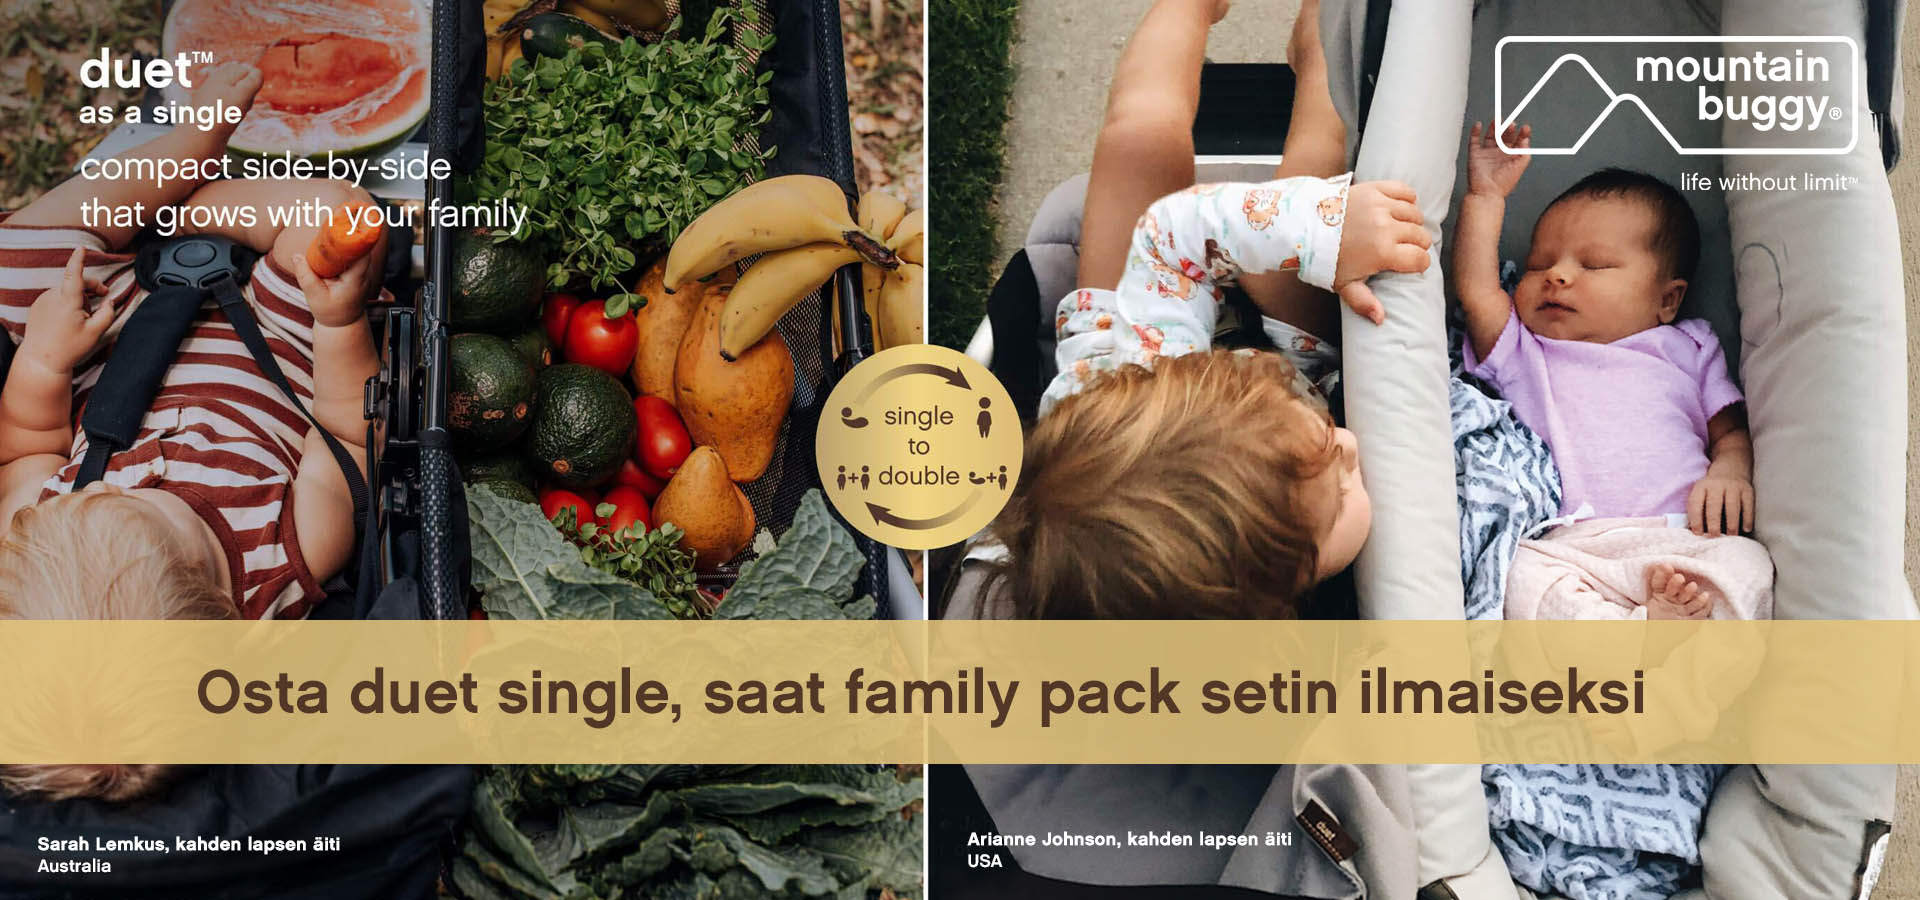 Osta Mountain Buggy Duet Single, saat Family pack ilmaiseksi - Vaunu-aitta